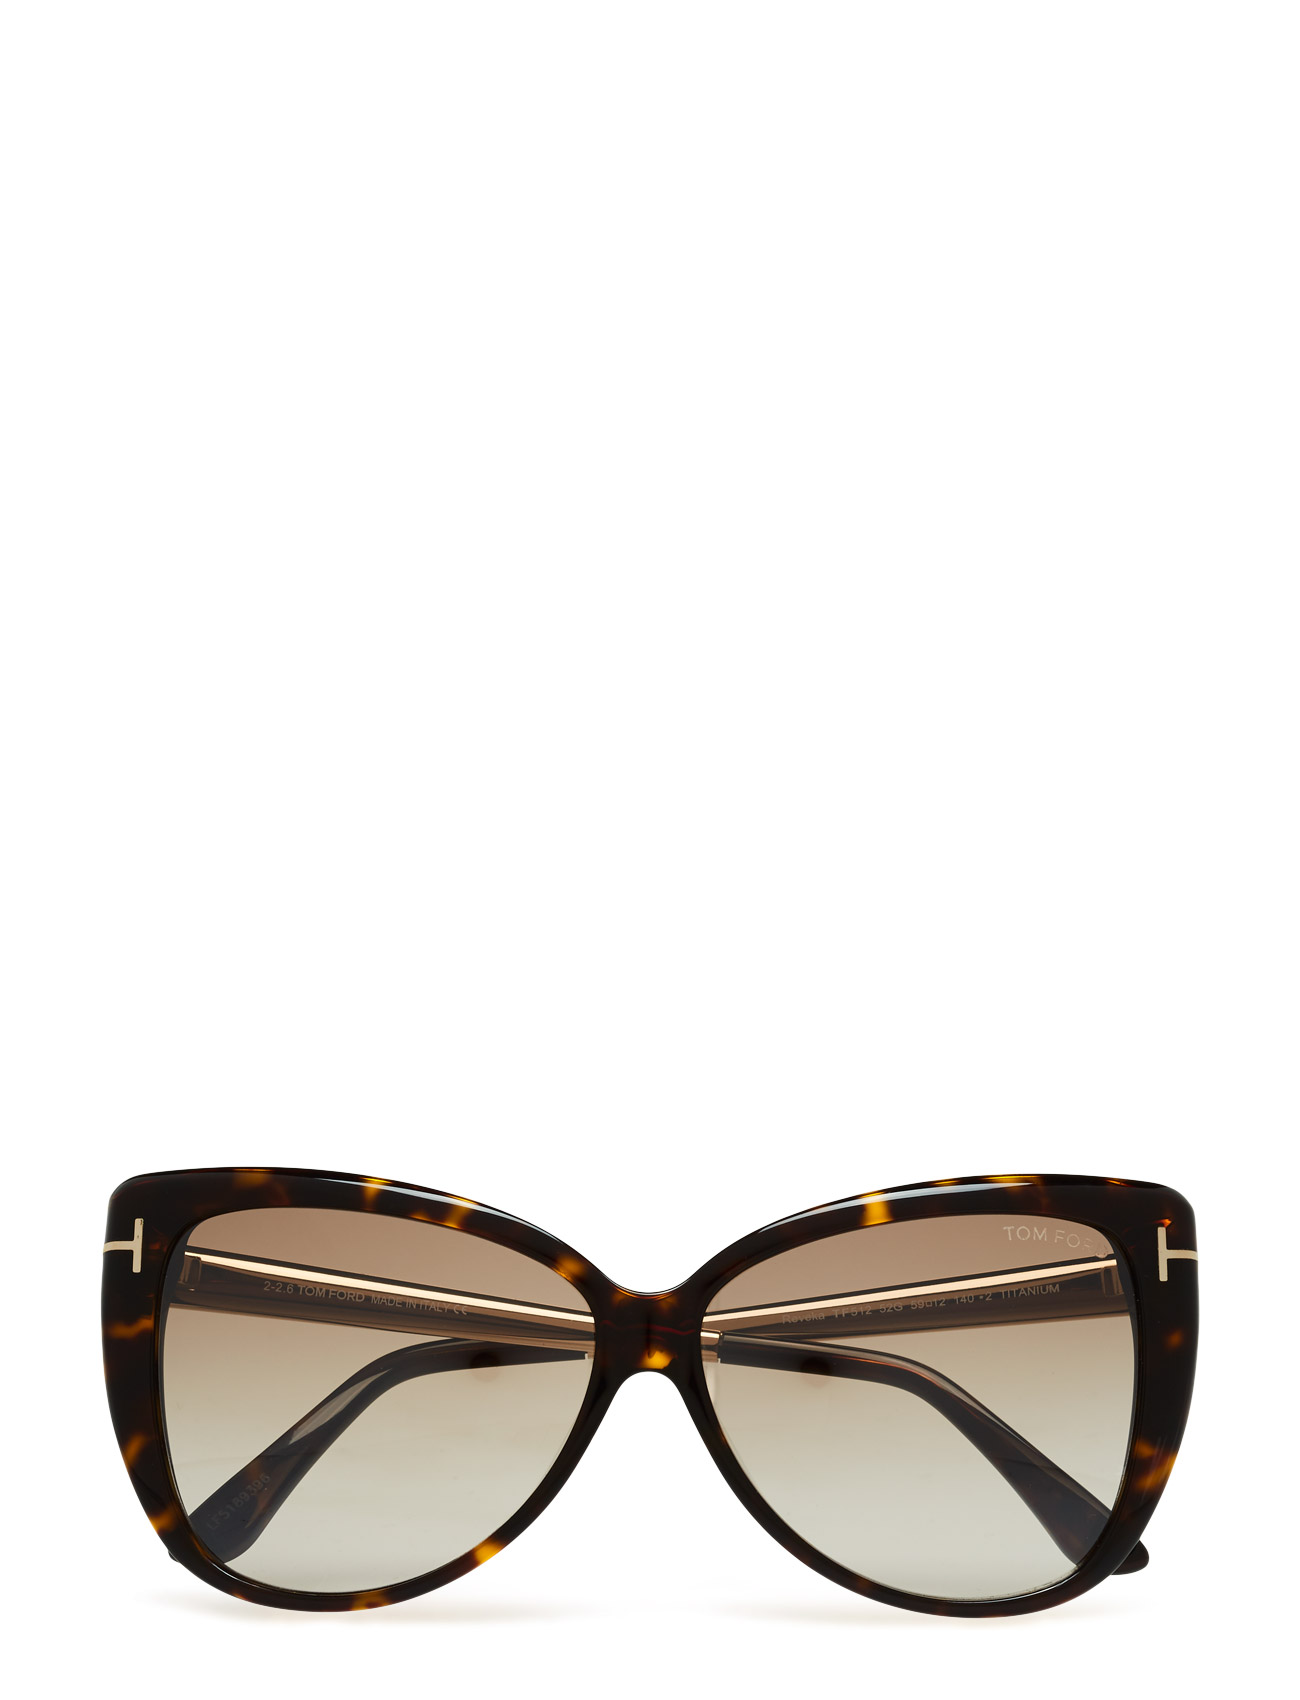 56b0e30b753a Tom Ford Sunglasses solbriller – Tom Ford Reveka til dame i 52G DARK ...